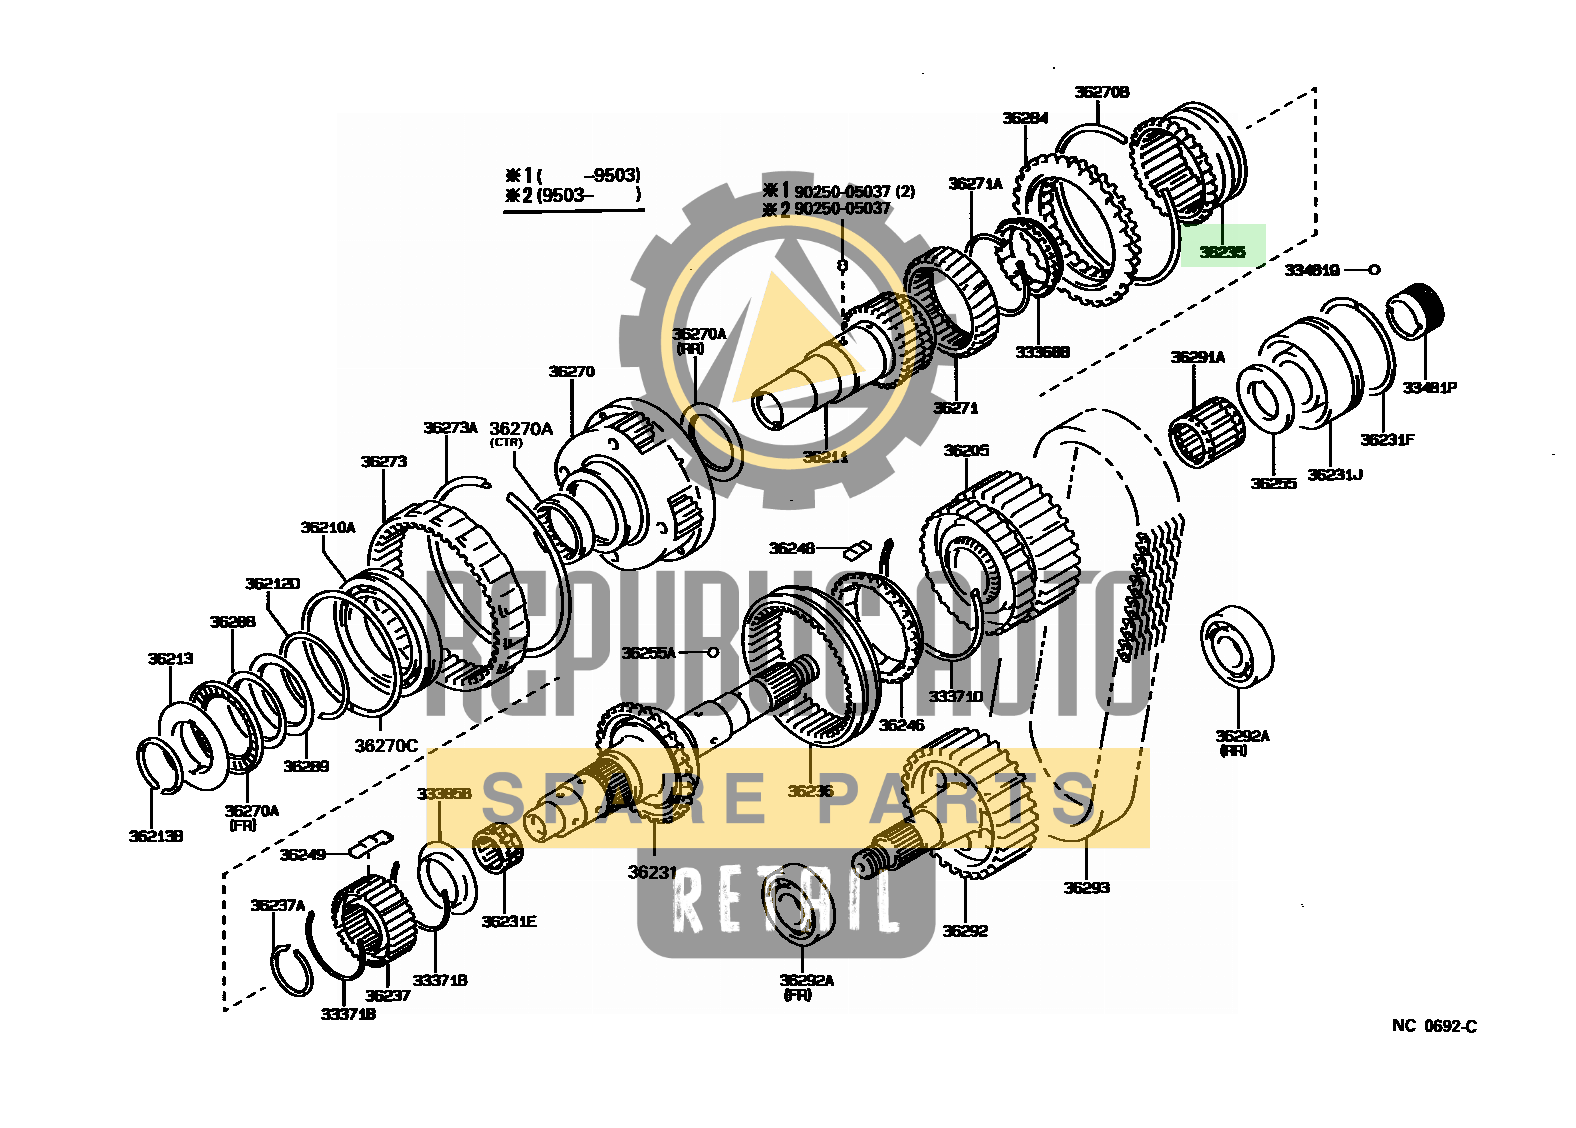 Part number: 36235-35021 	4-RUNNER TRUCK (NAP) 674450 (RN101L-TRLDEAB) / TRANSFER GEAR